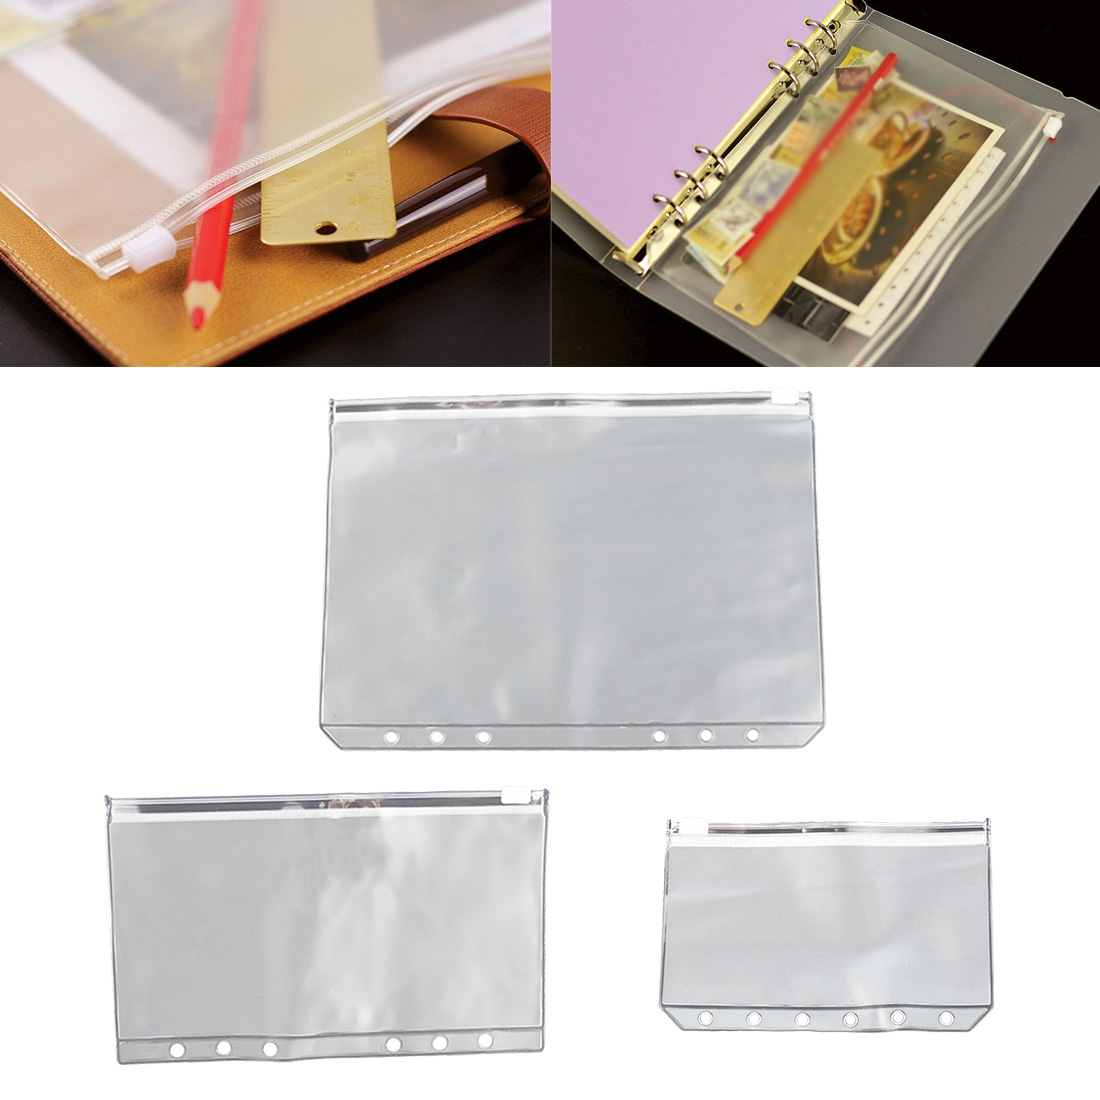 2 PCS Plastic Organizer Pouch Storage Bag Document Folder Travel Bag Waterproof Bag For Cloth